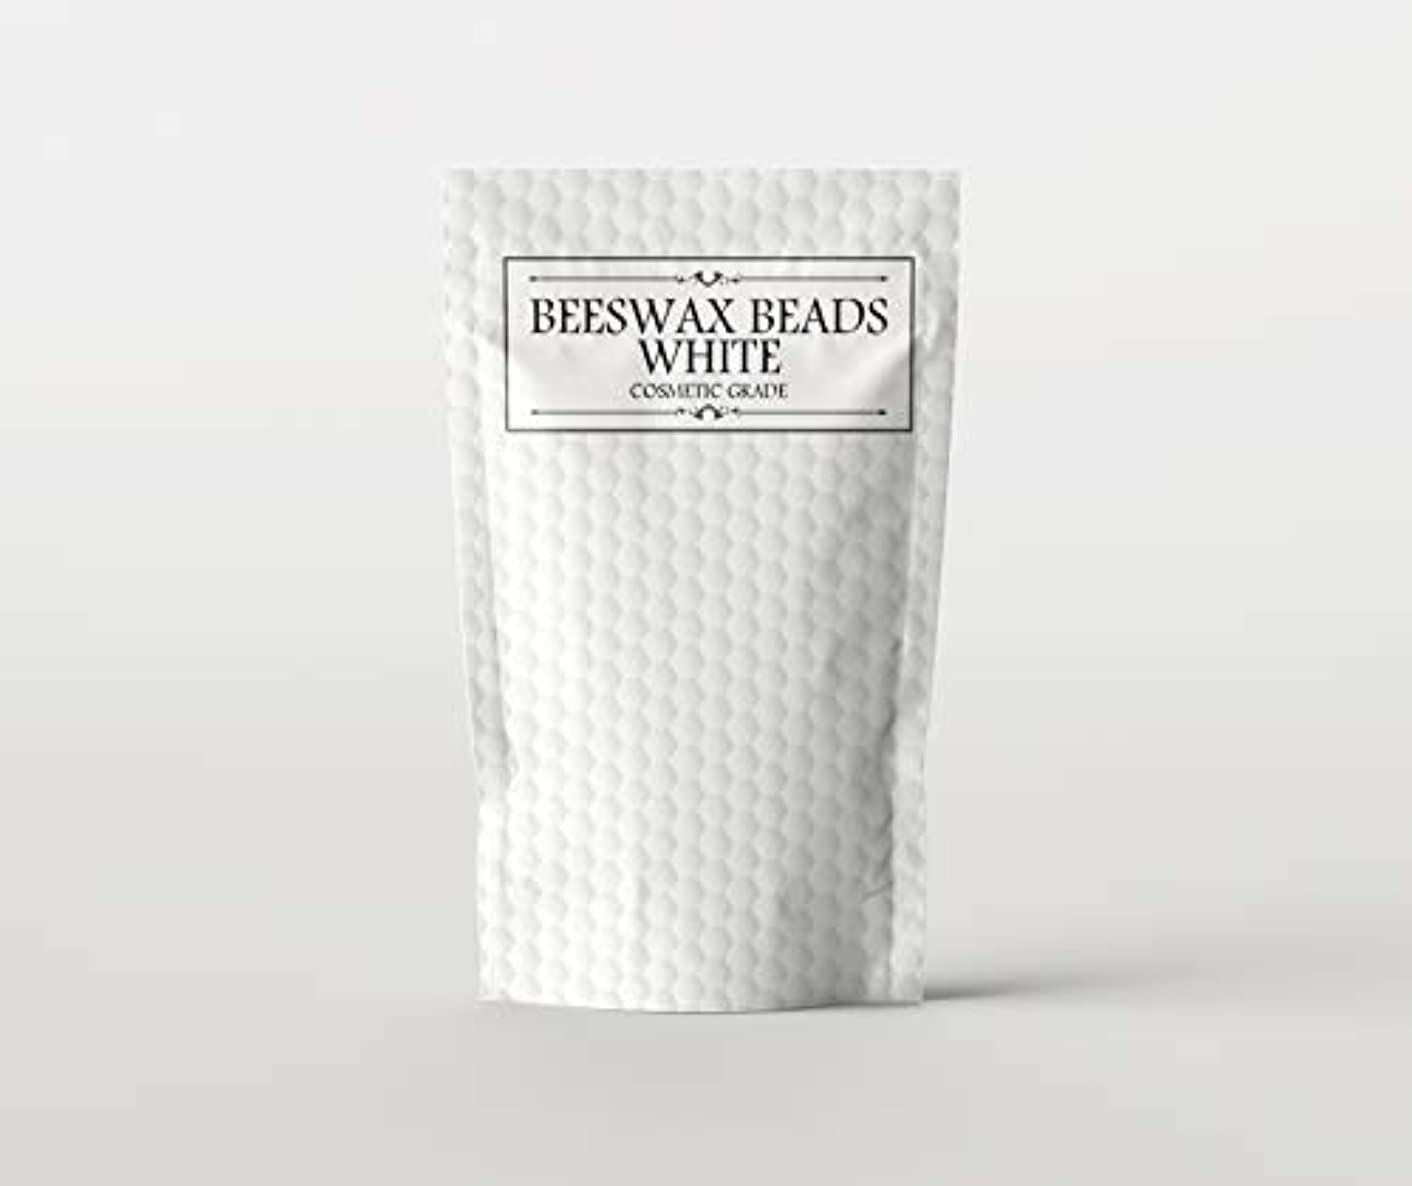 ラベル受動的電話するBeeswax Beads White - Cosmetic Grade - 1Kg